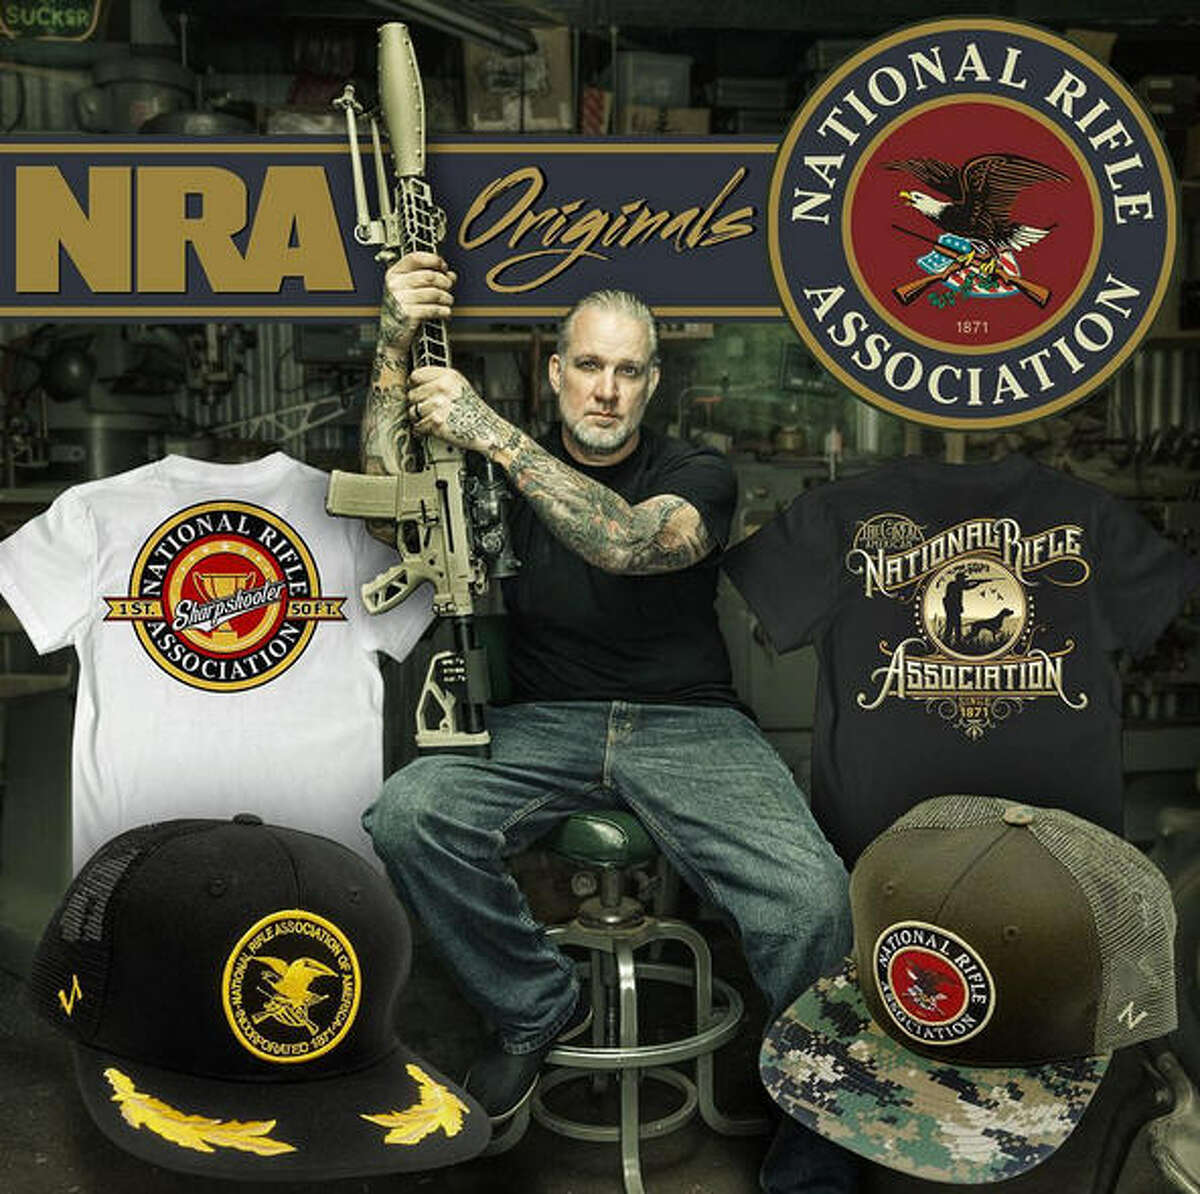 Jesse James, the famous heavily-tattooed motorcycle builder, moved to Texas not too long ago and got into the business of building custom pistols and rifles. He's now designing apparel for the NRA, according to an announcement Aug. 1, 2016.